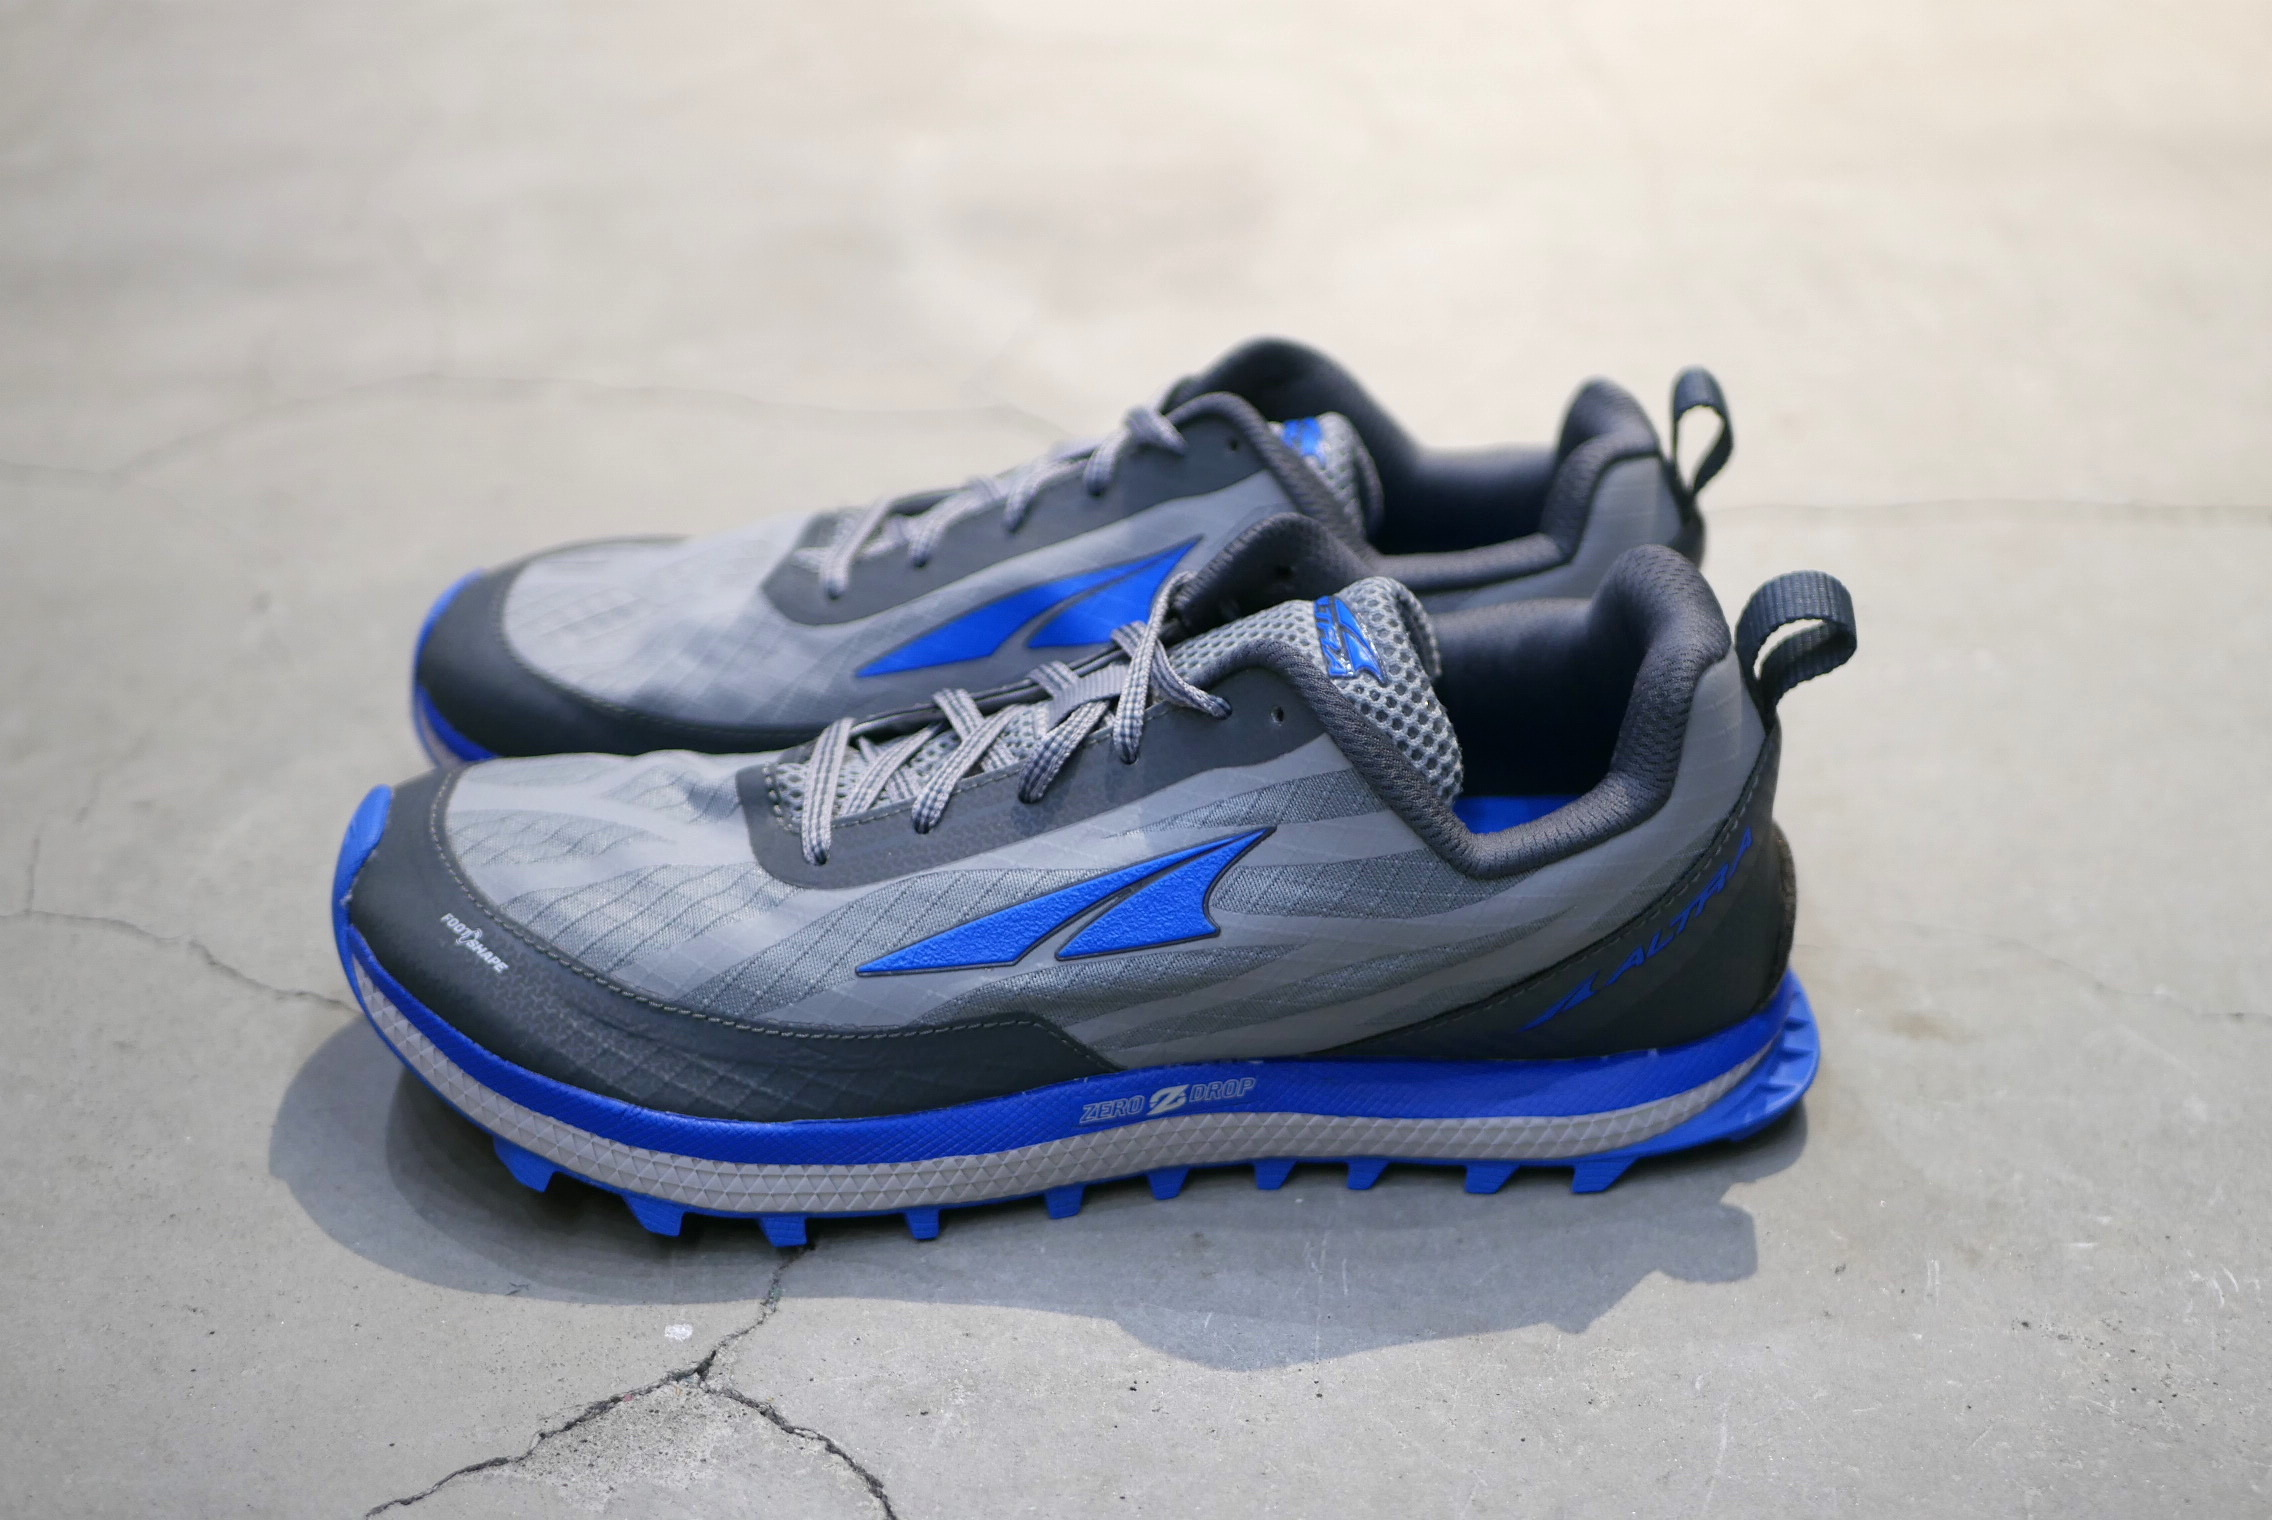 ALTRA / SUPERIOR 3.0 | st. valley house